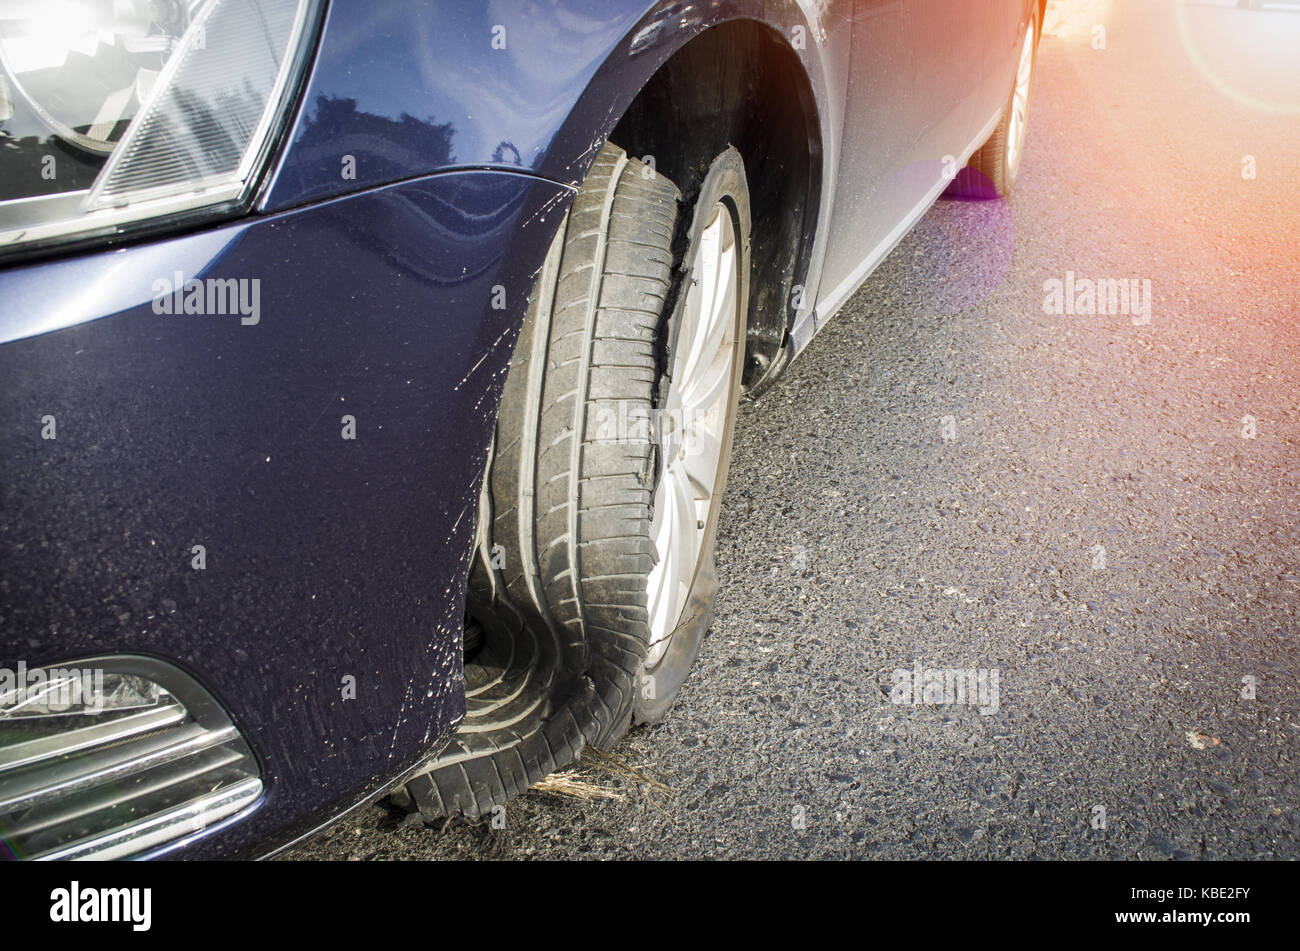 damaged tire after tire explosion at high speed on highway Stock Photo